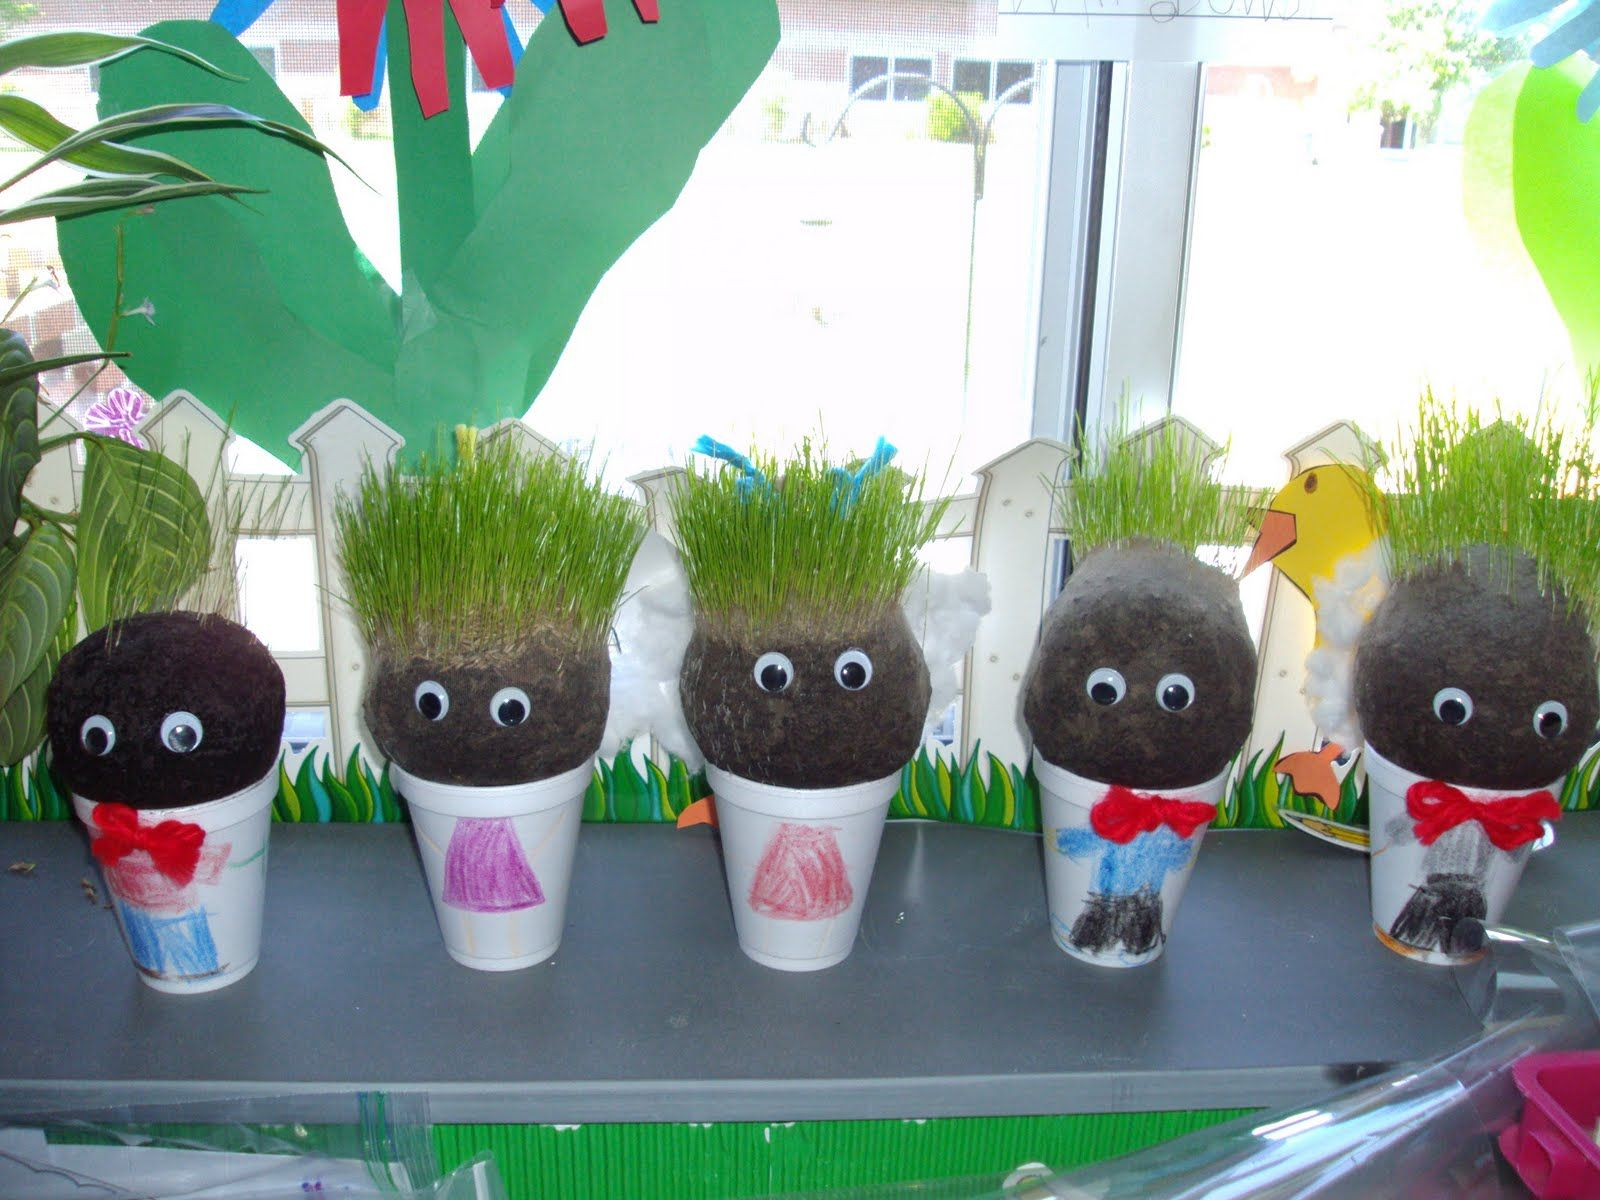 The Cutest Project Ever Chia Pet Arts And Crafts For Kids